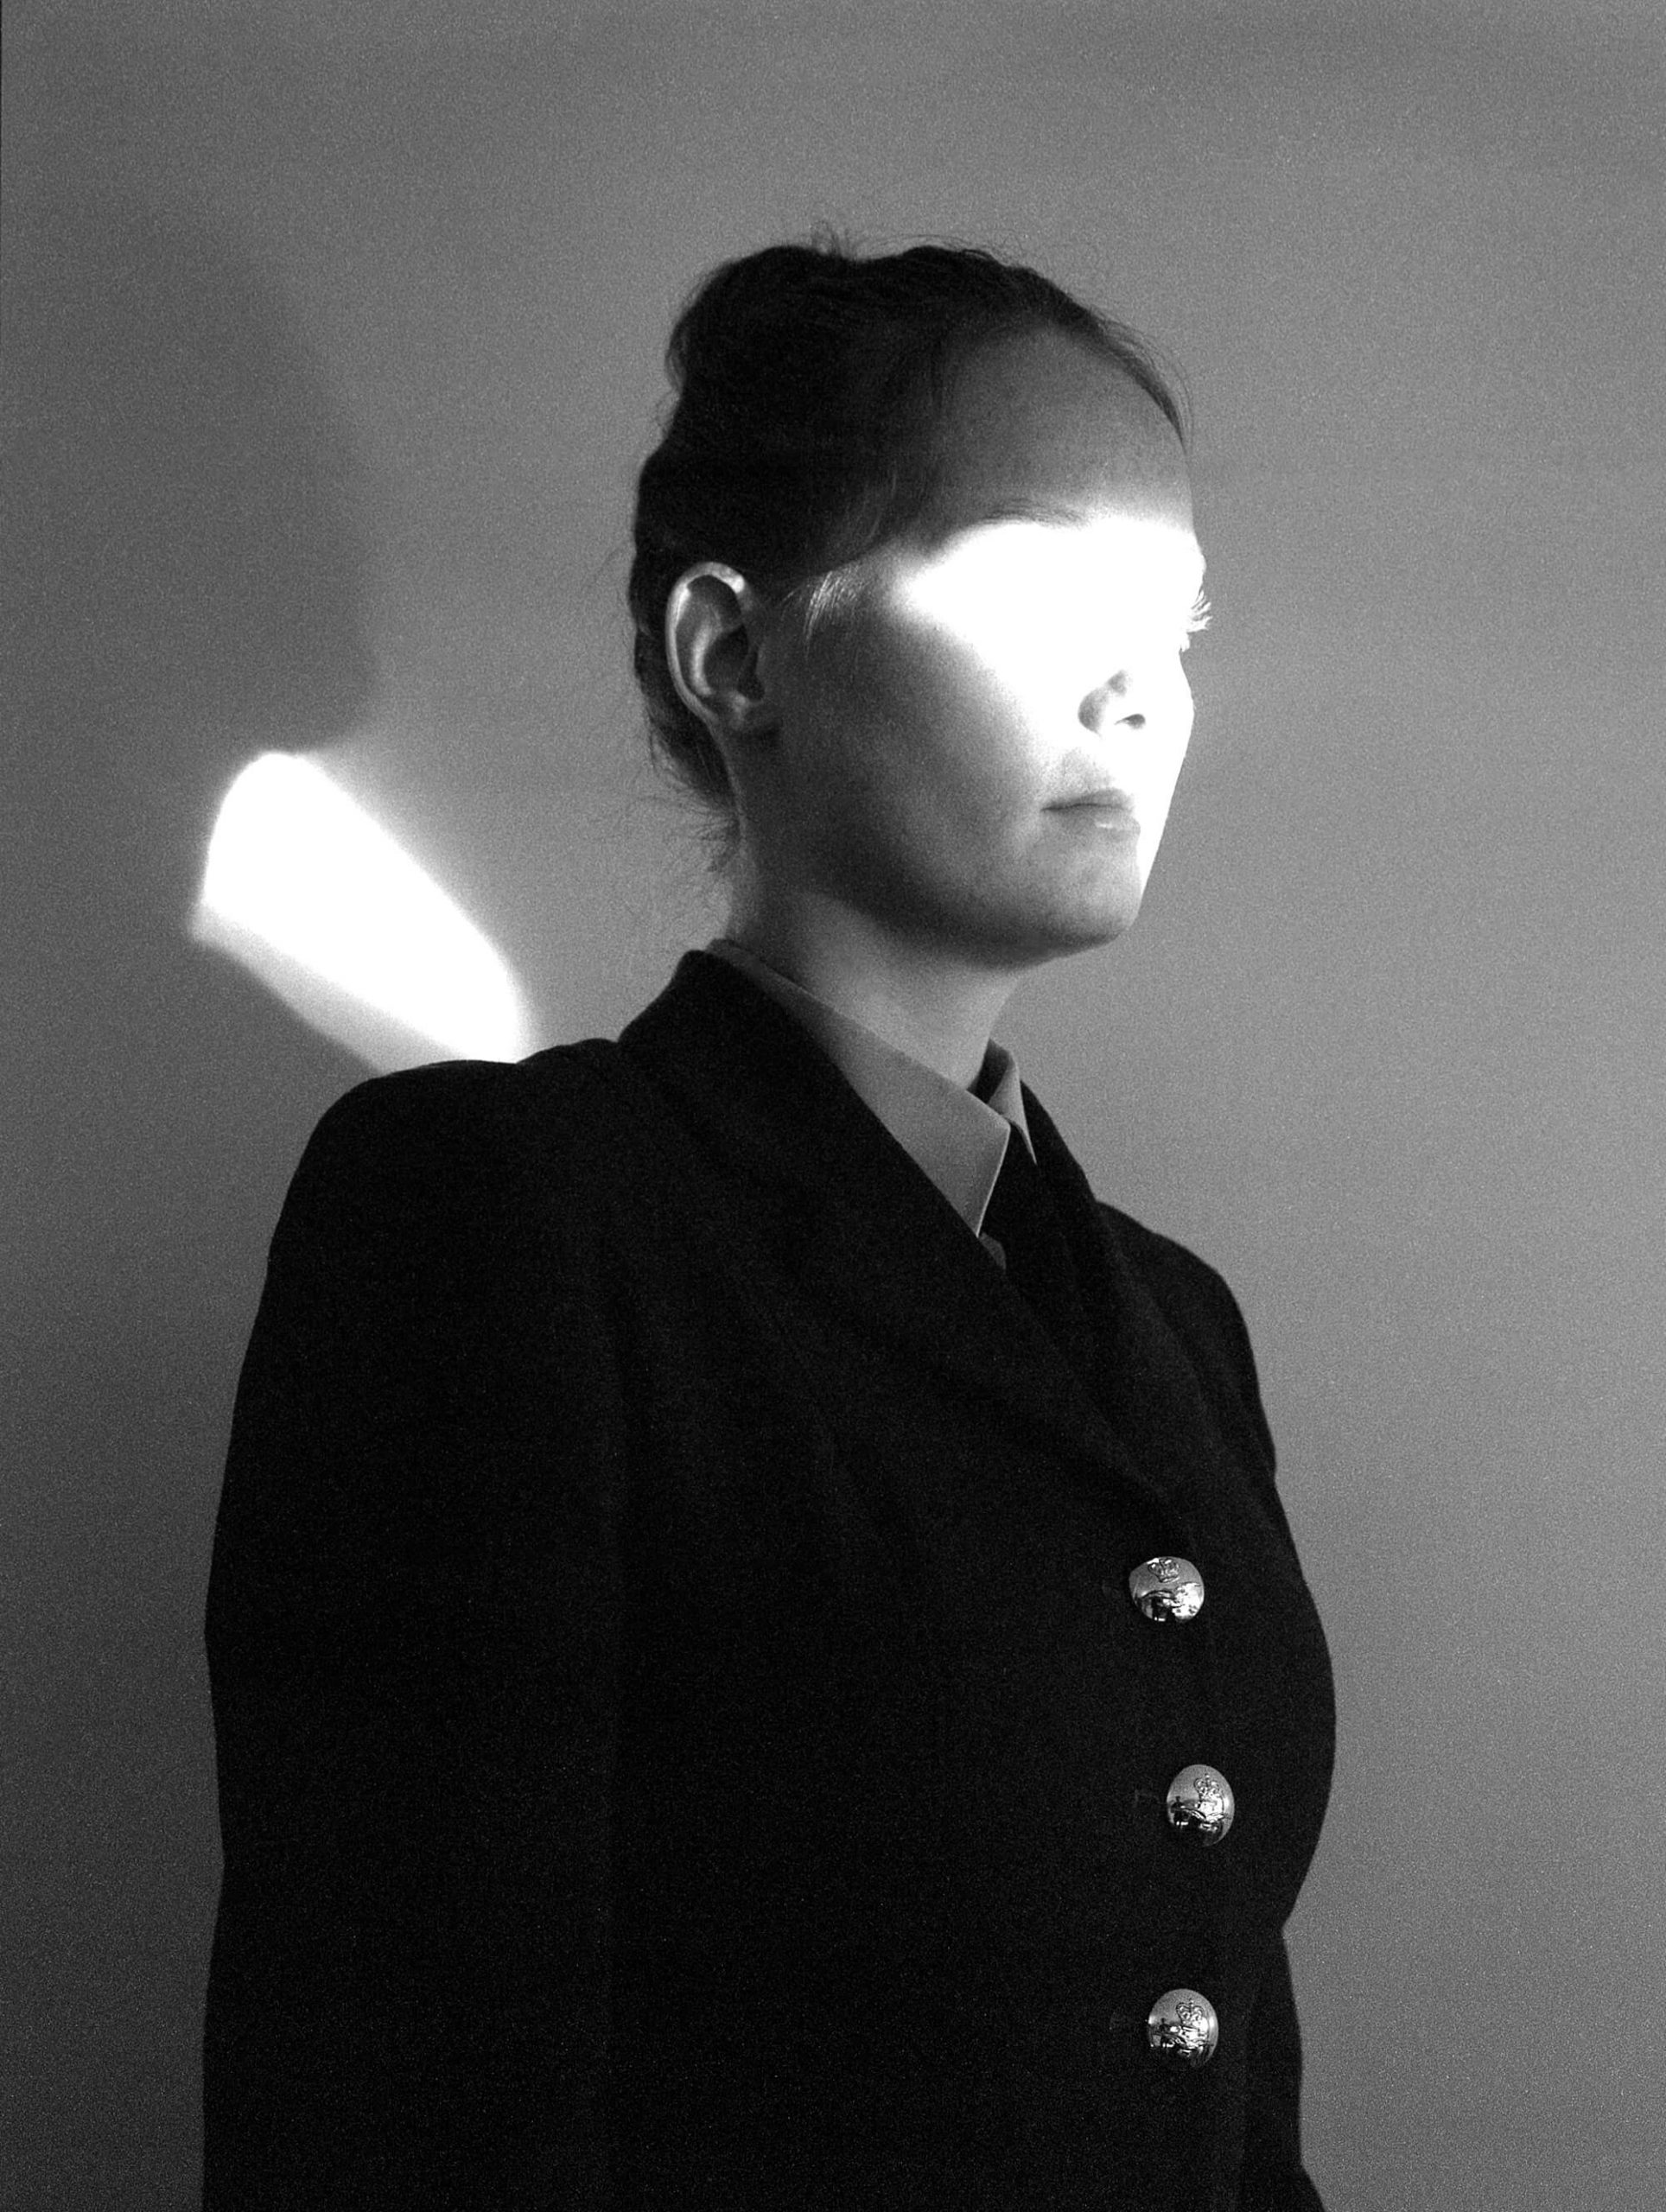 Rosie Dale - Ad Astra portrait of girl with light on her face